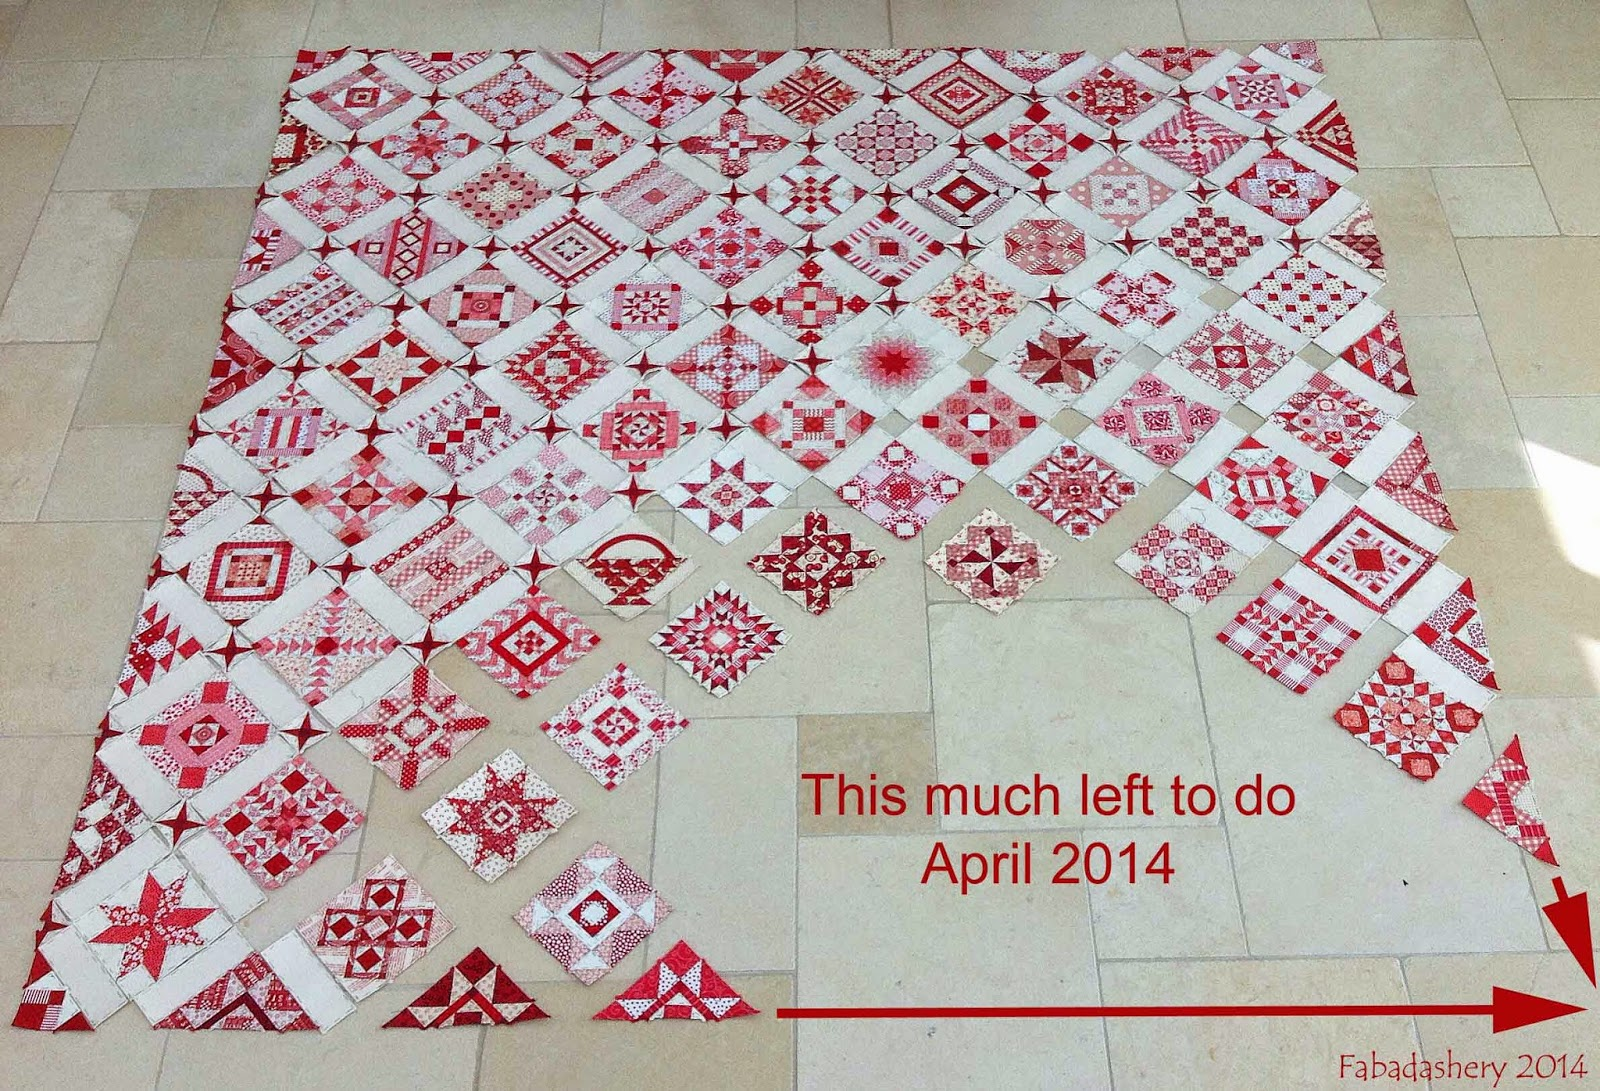 Red and White Nearly Insane Quilt - April 2014